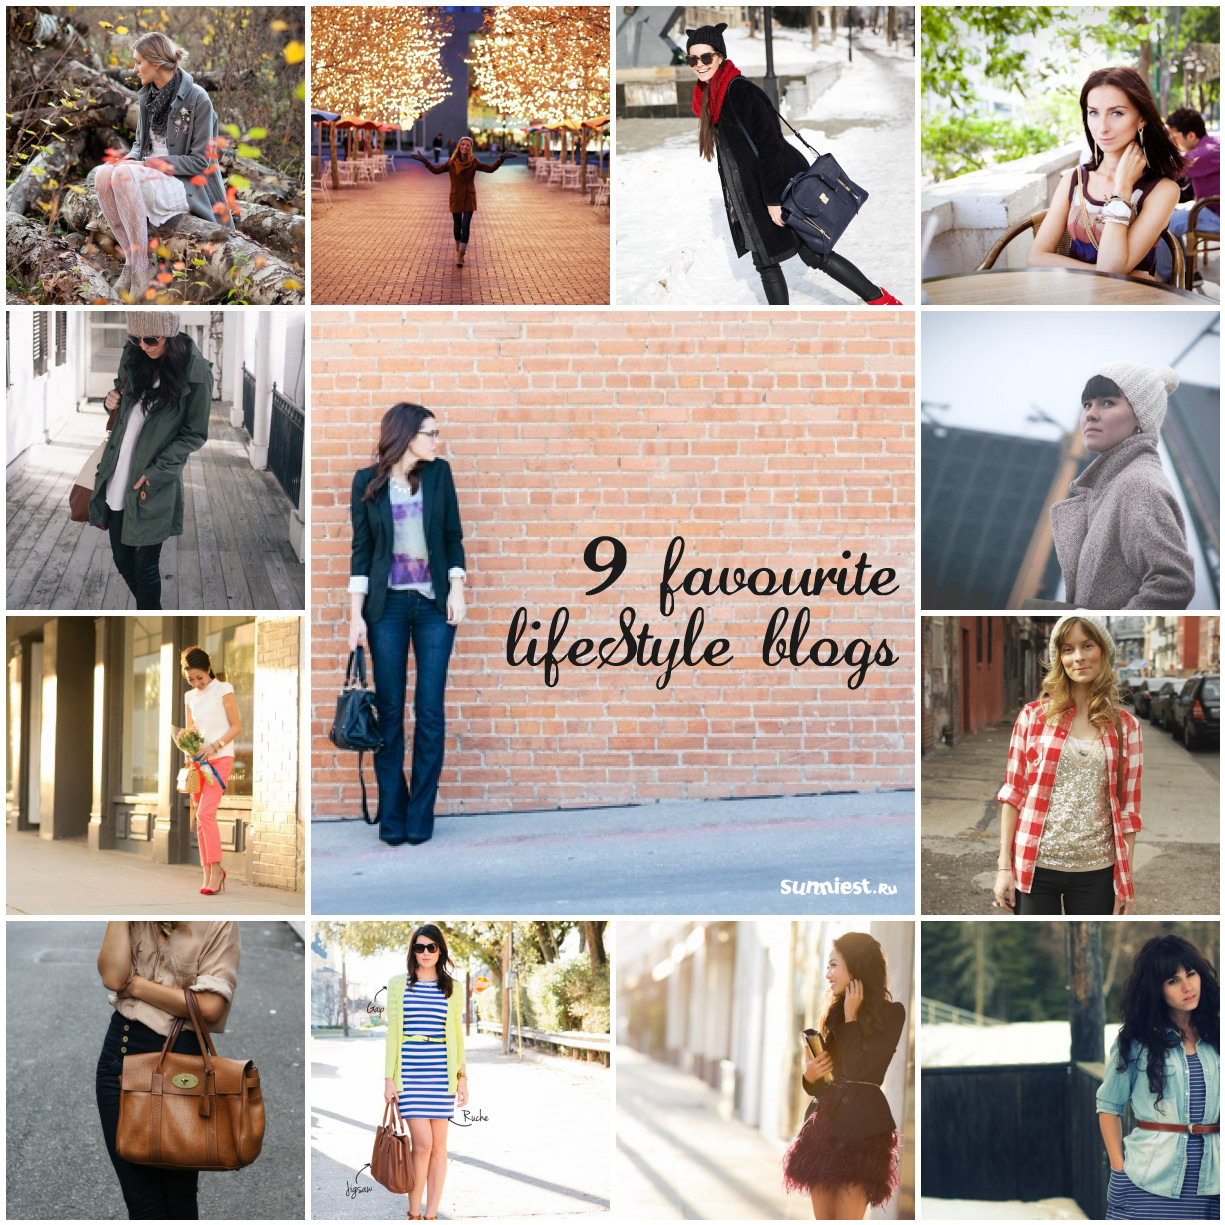 9-favourite-lifestyle-blogs by sunniest